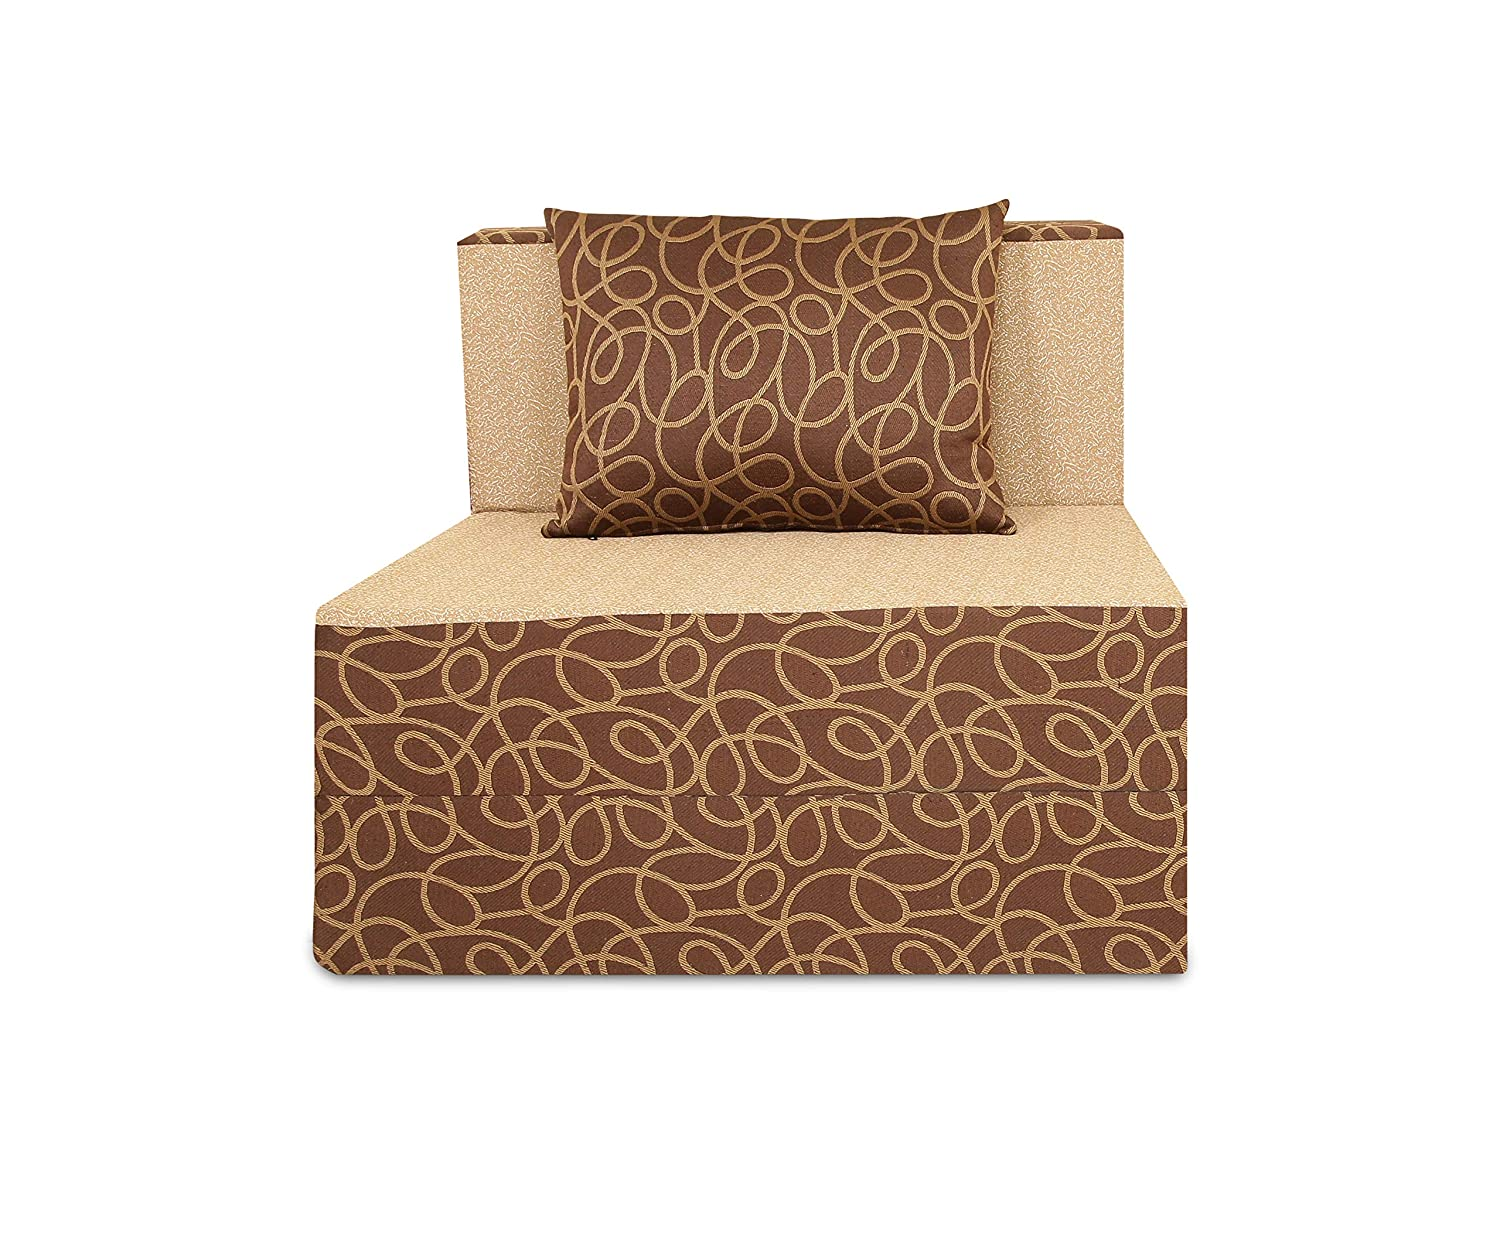 Adorn India Easy Three Seater Sofa Cum Bed (Brown and Gold) (Brown & Beige, 3 x 6)